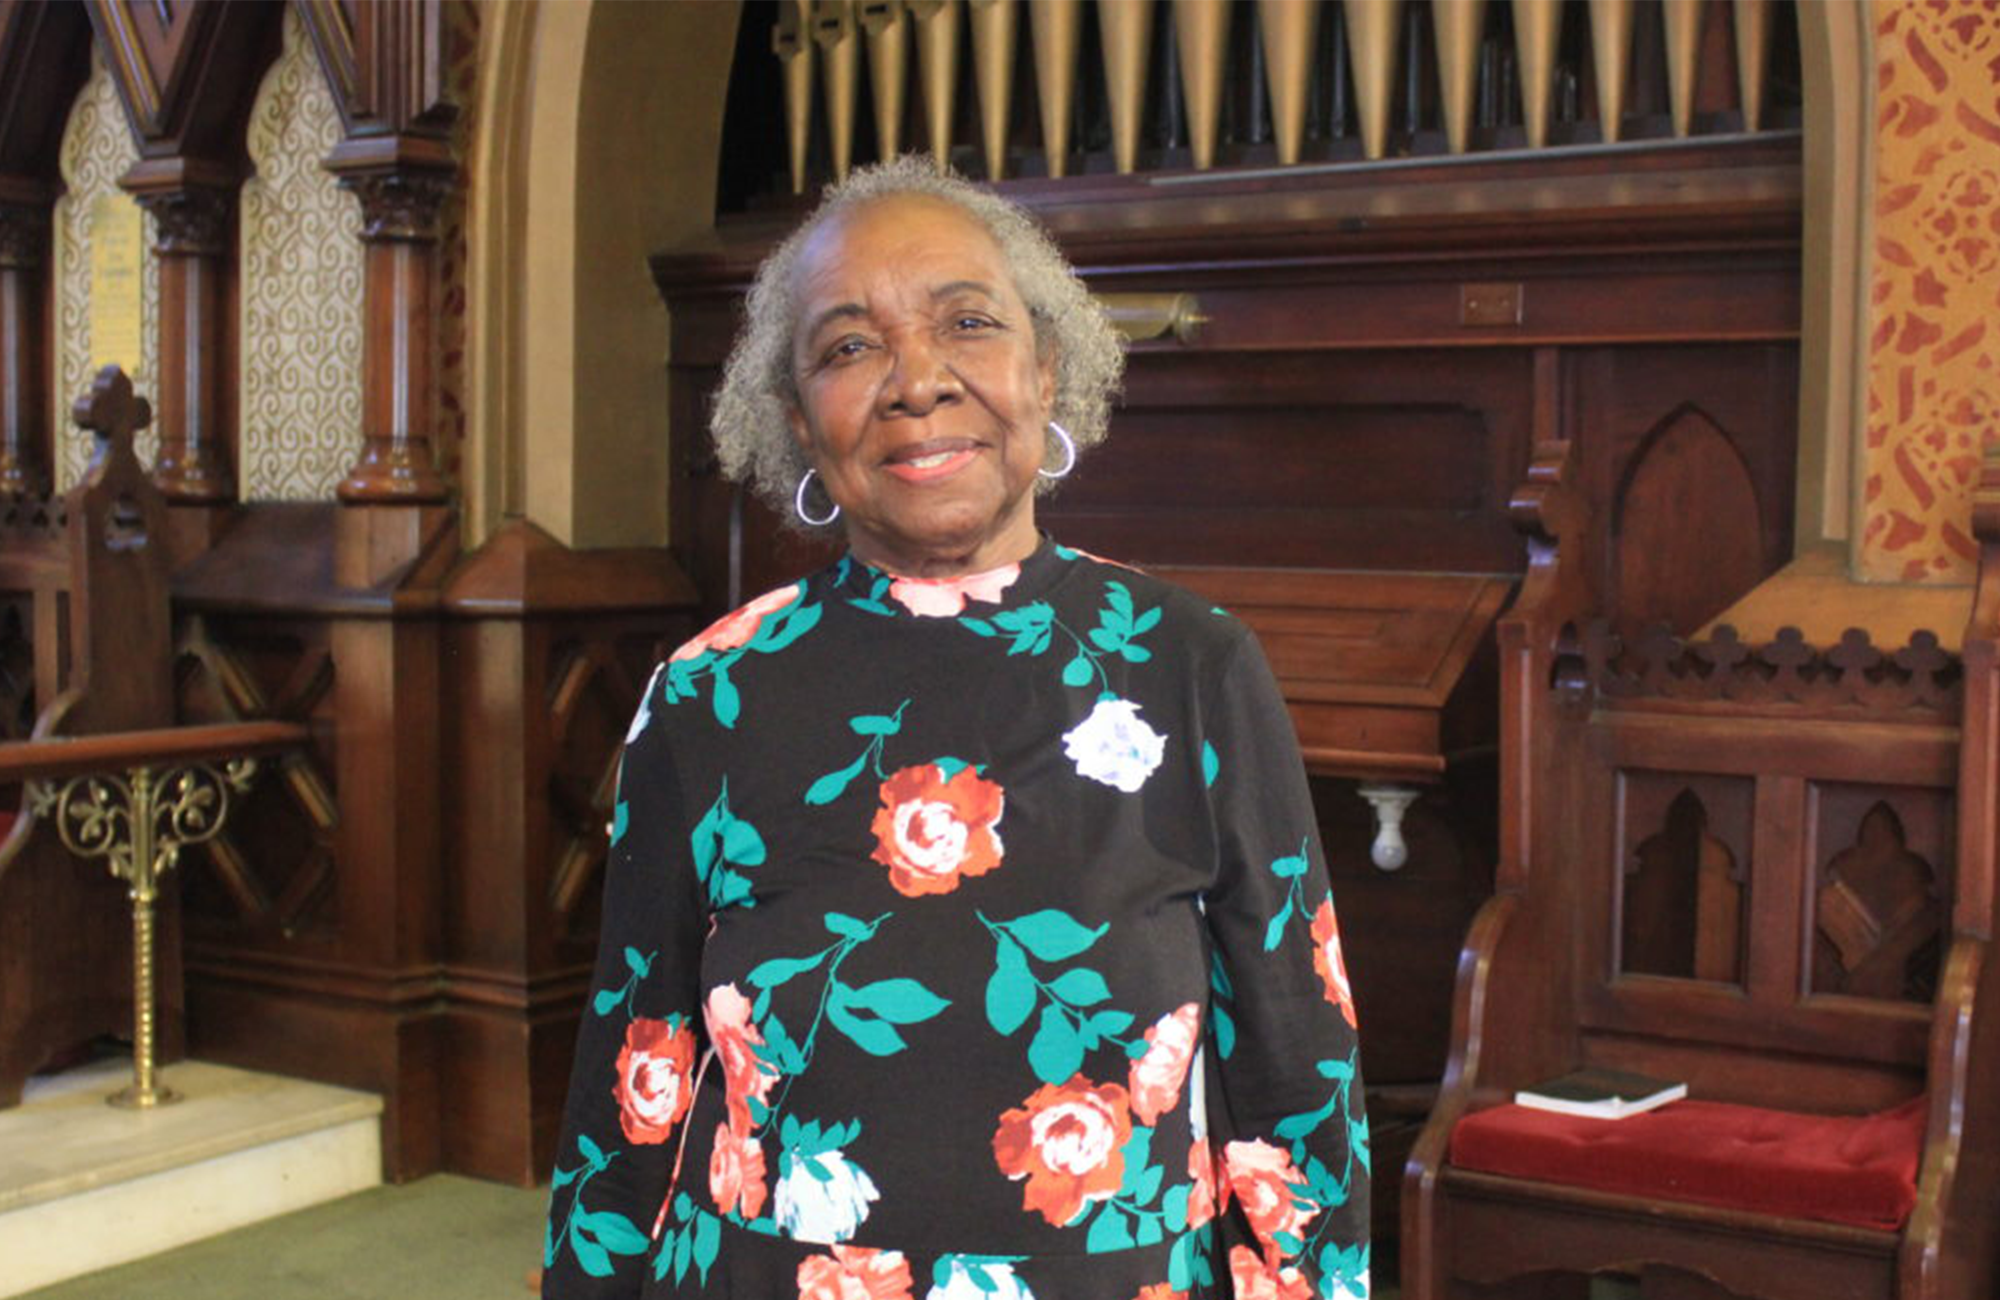 Image of Dr. Joan Hillsman in front of church organ pipes